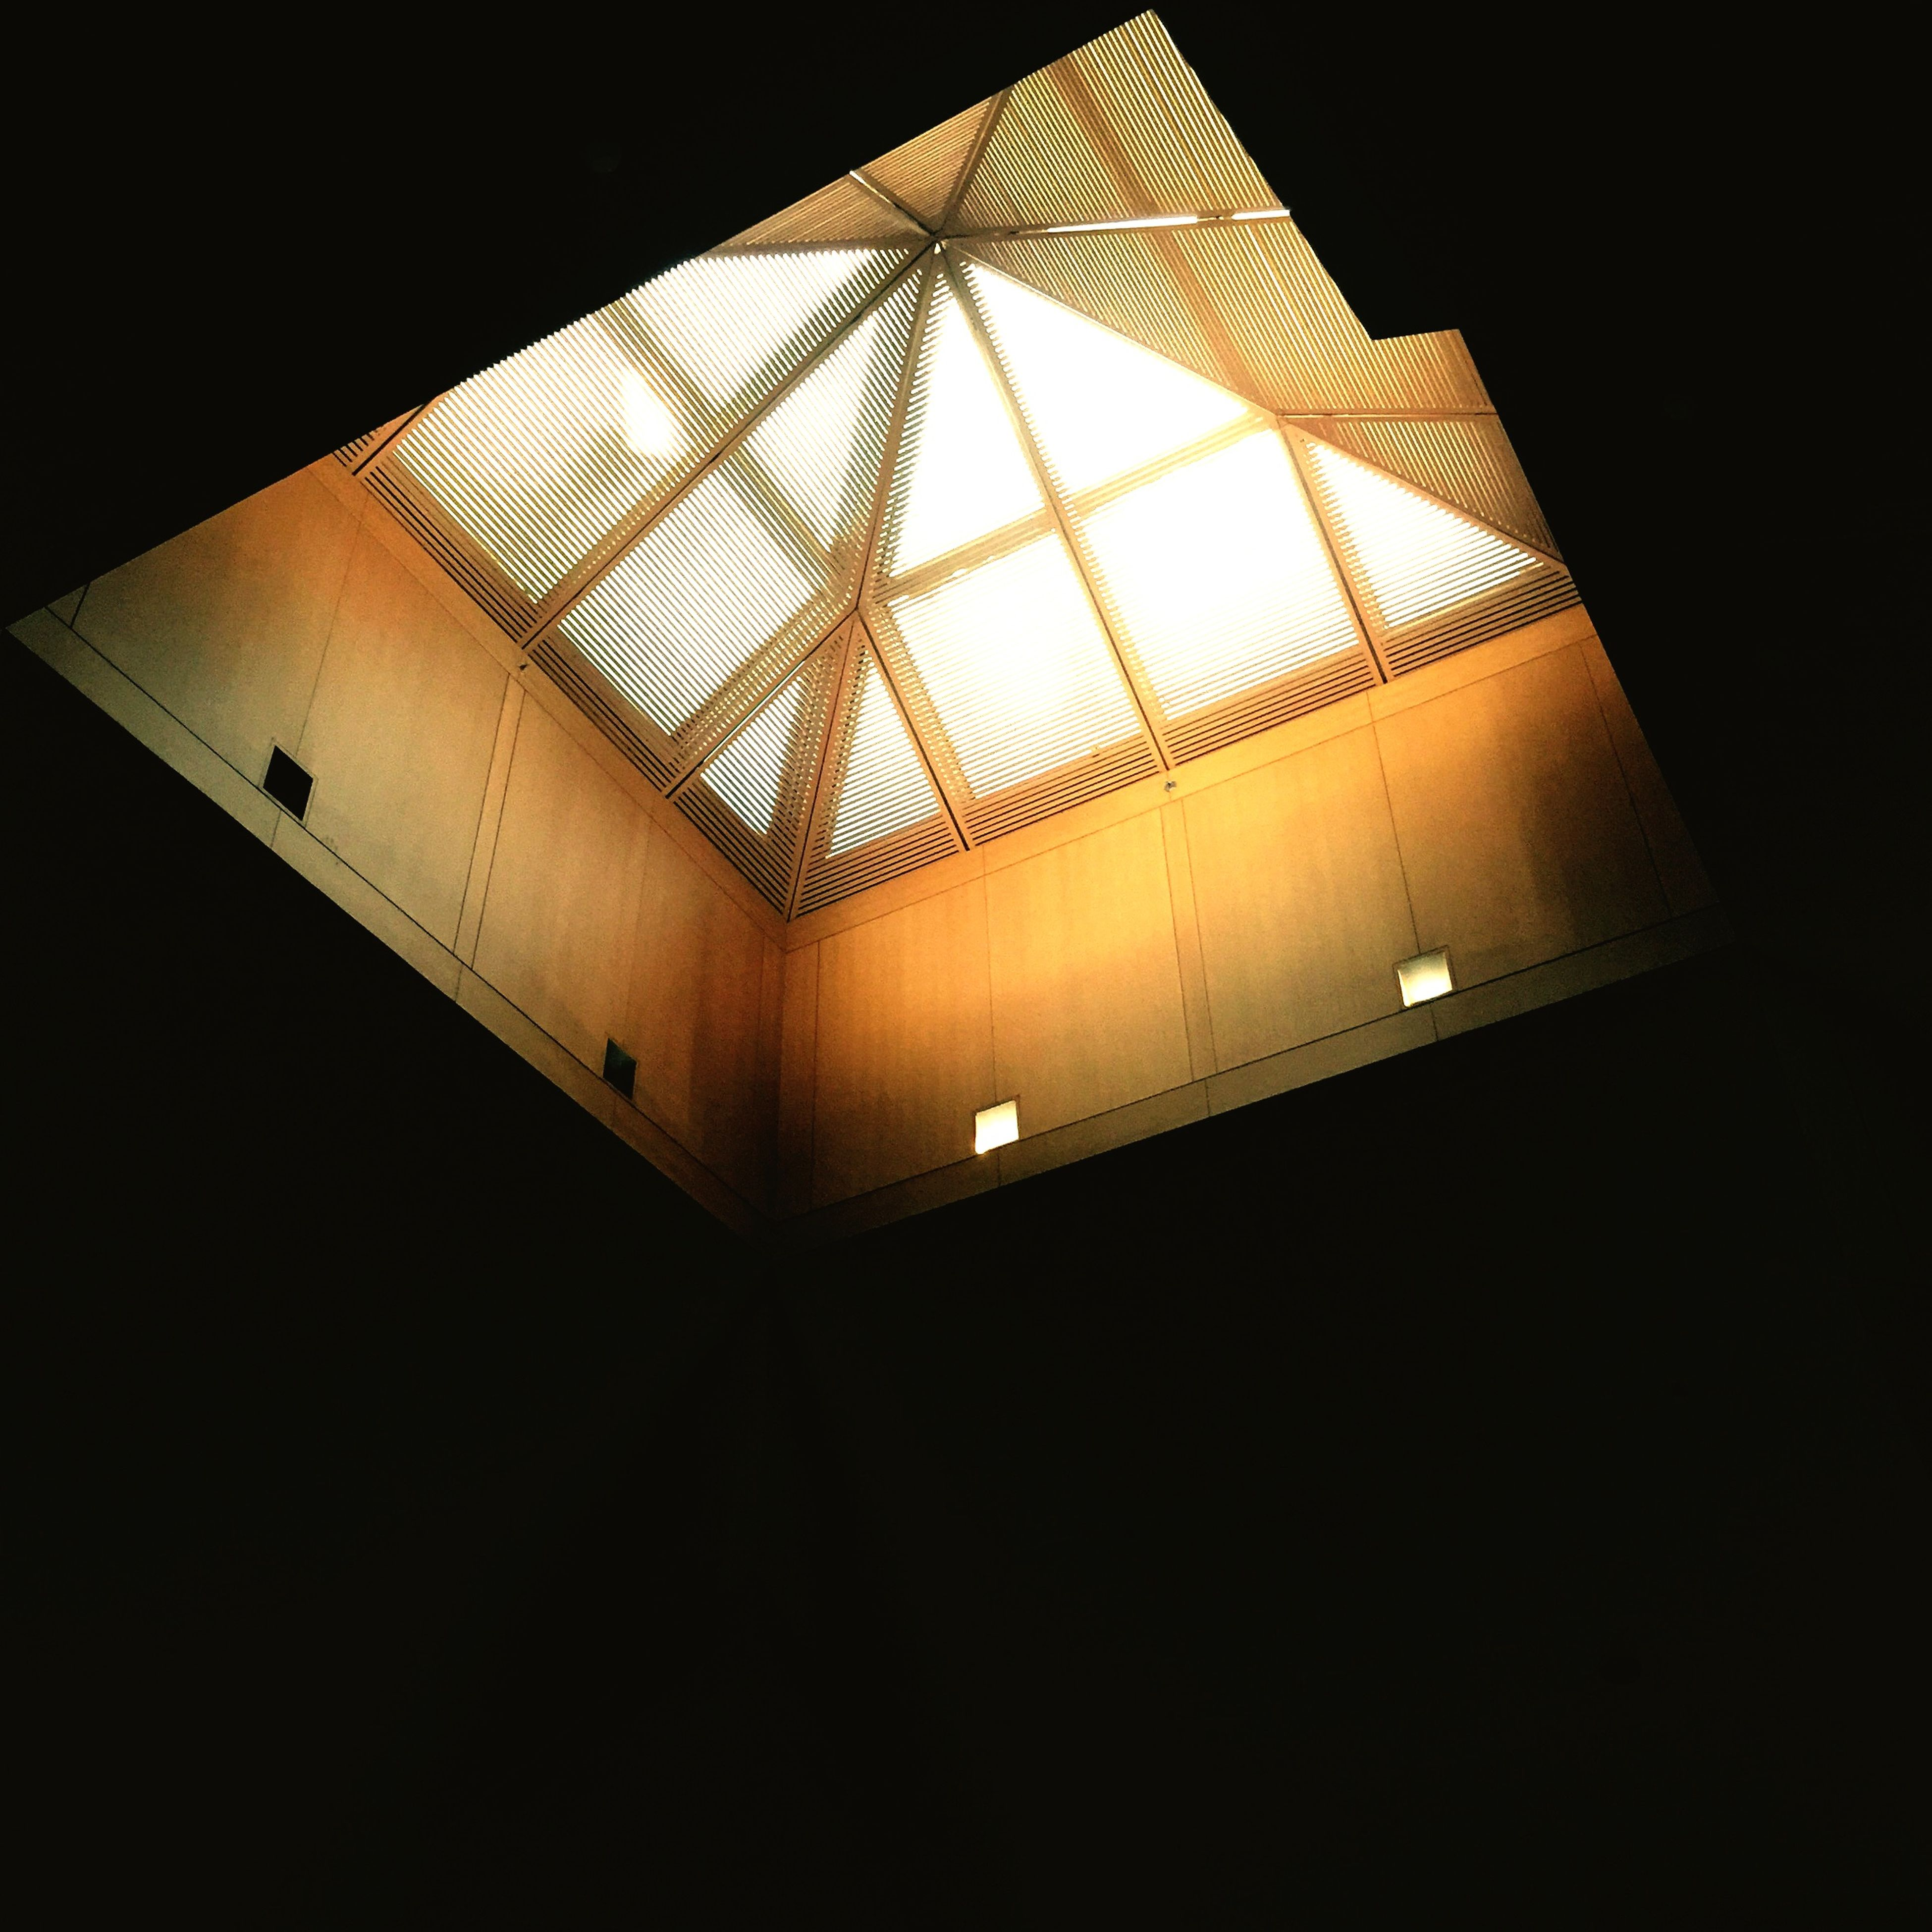 indoors, low angle view, architecture, built structure, ceiling, modern, building, staircase, illuminated, wall - building feature, no people, sunlight, shadow, lighting equipment, steps and staircases, directly below, window, steps, pattern, home interior